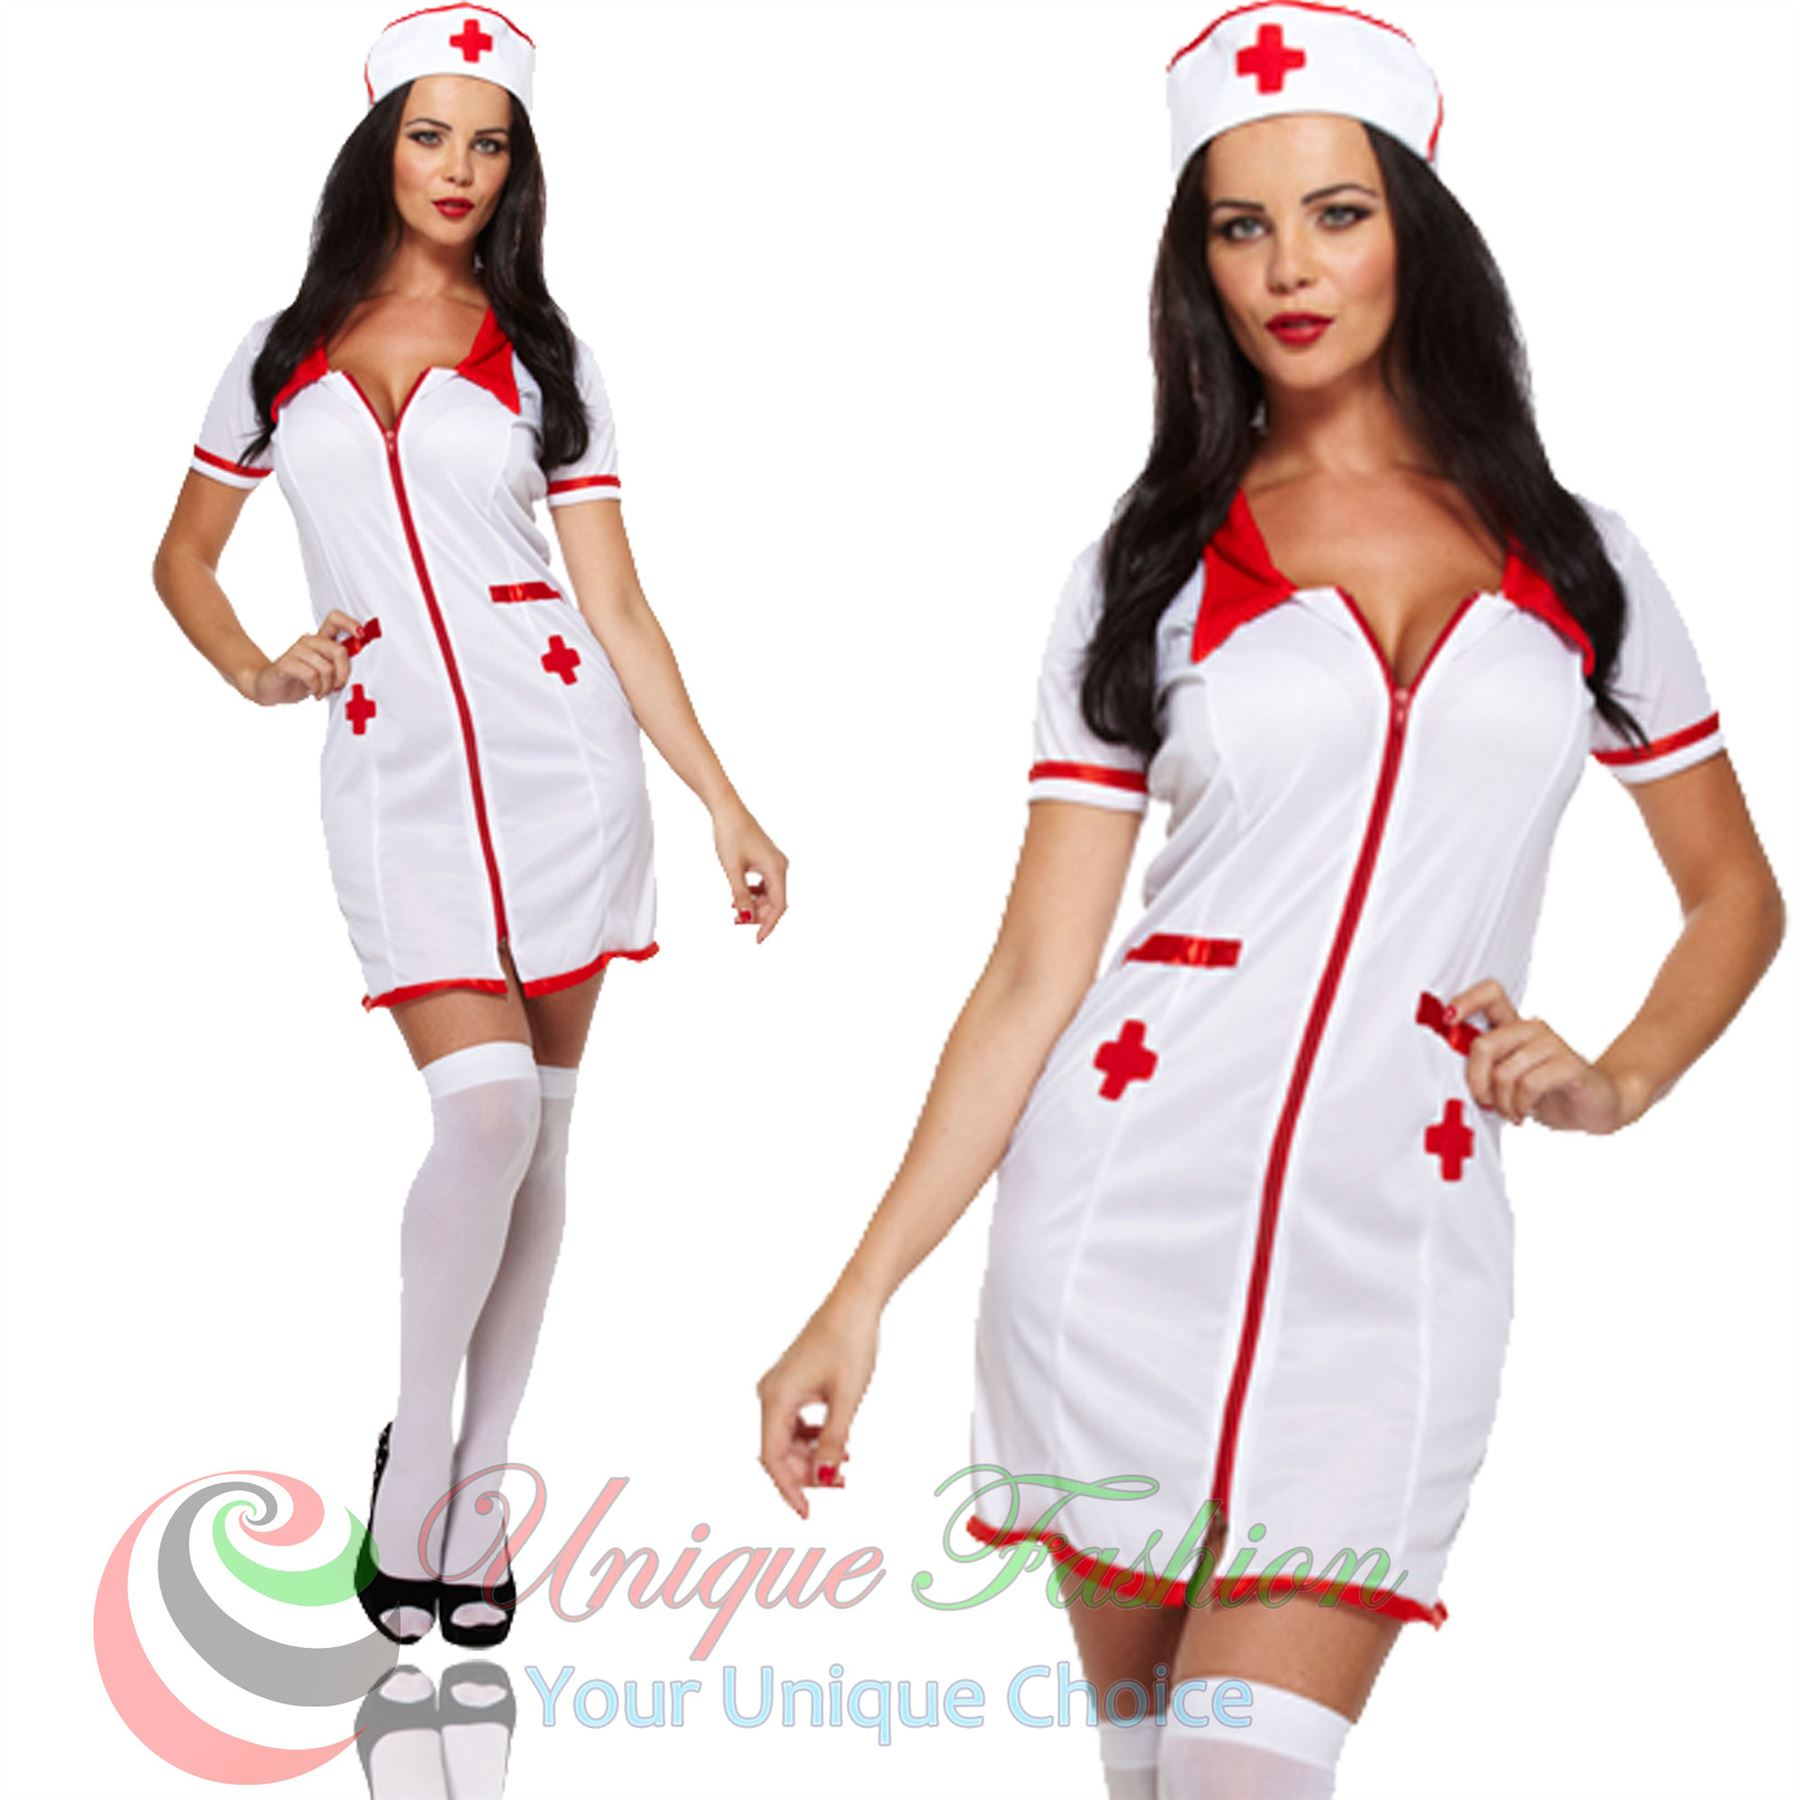 Ladies Fancy Dress Costume Halloween Party New Outfit Size Adult ...